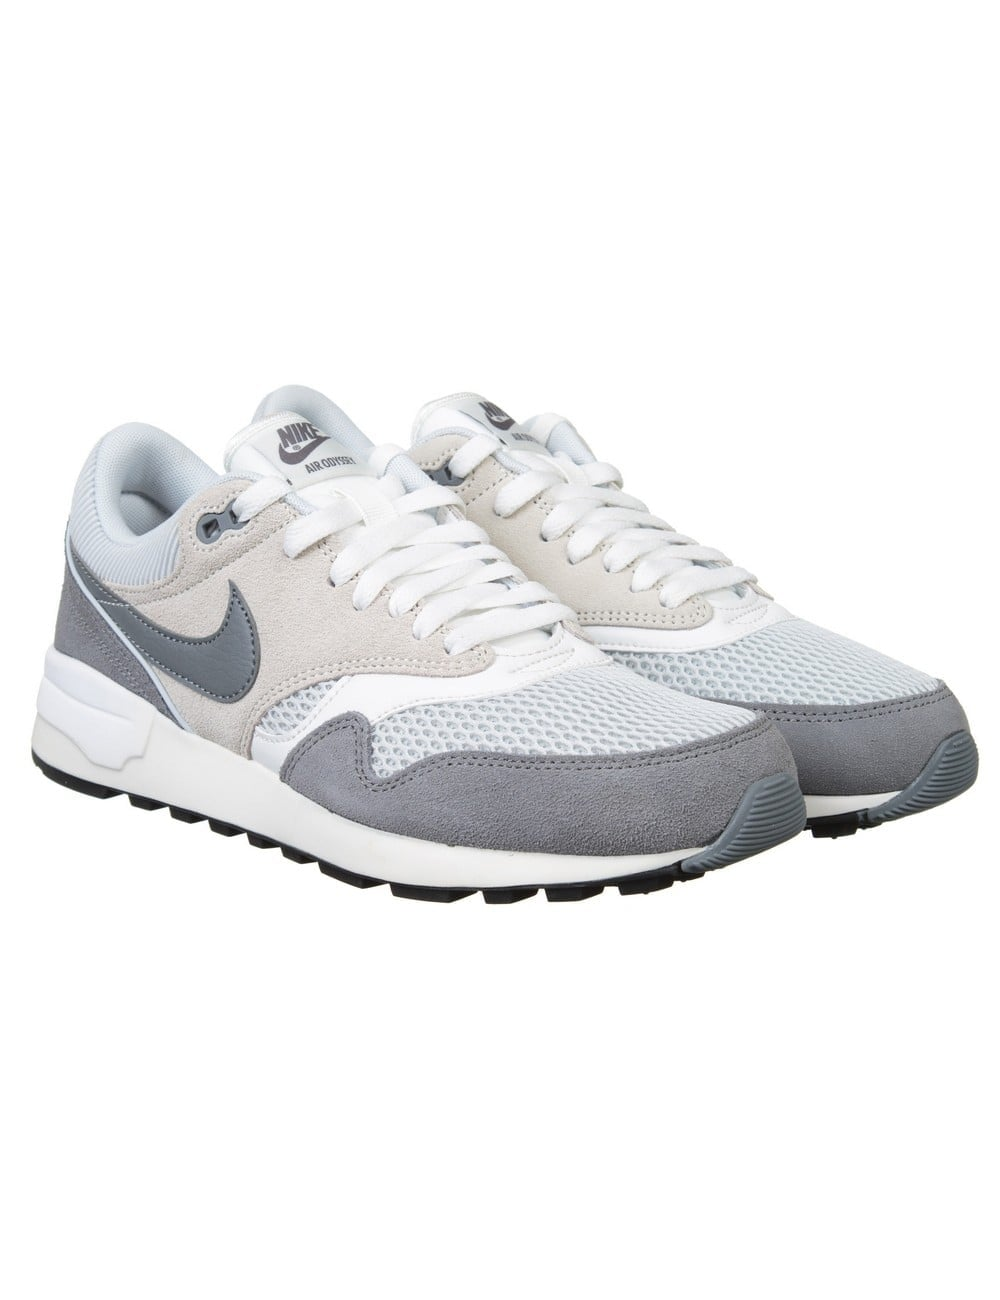 Odyssey Grey Shoes Nike Fat From Footwear Platinumcl Air Pure F5wAfq